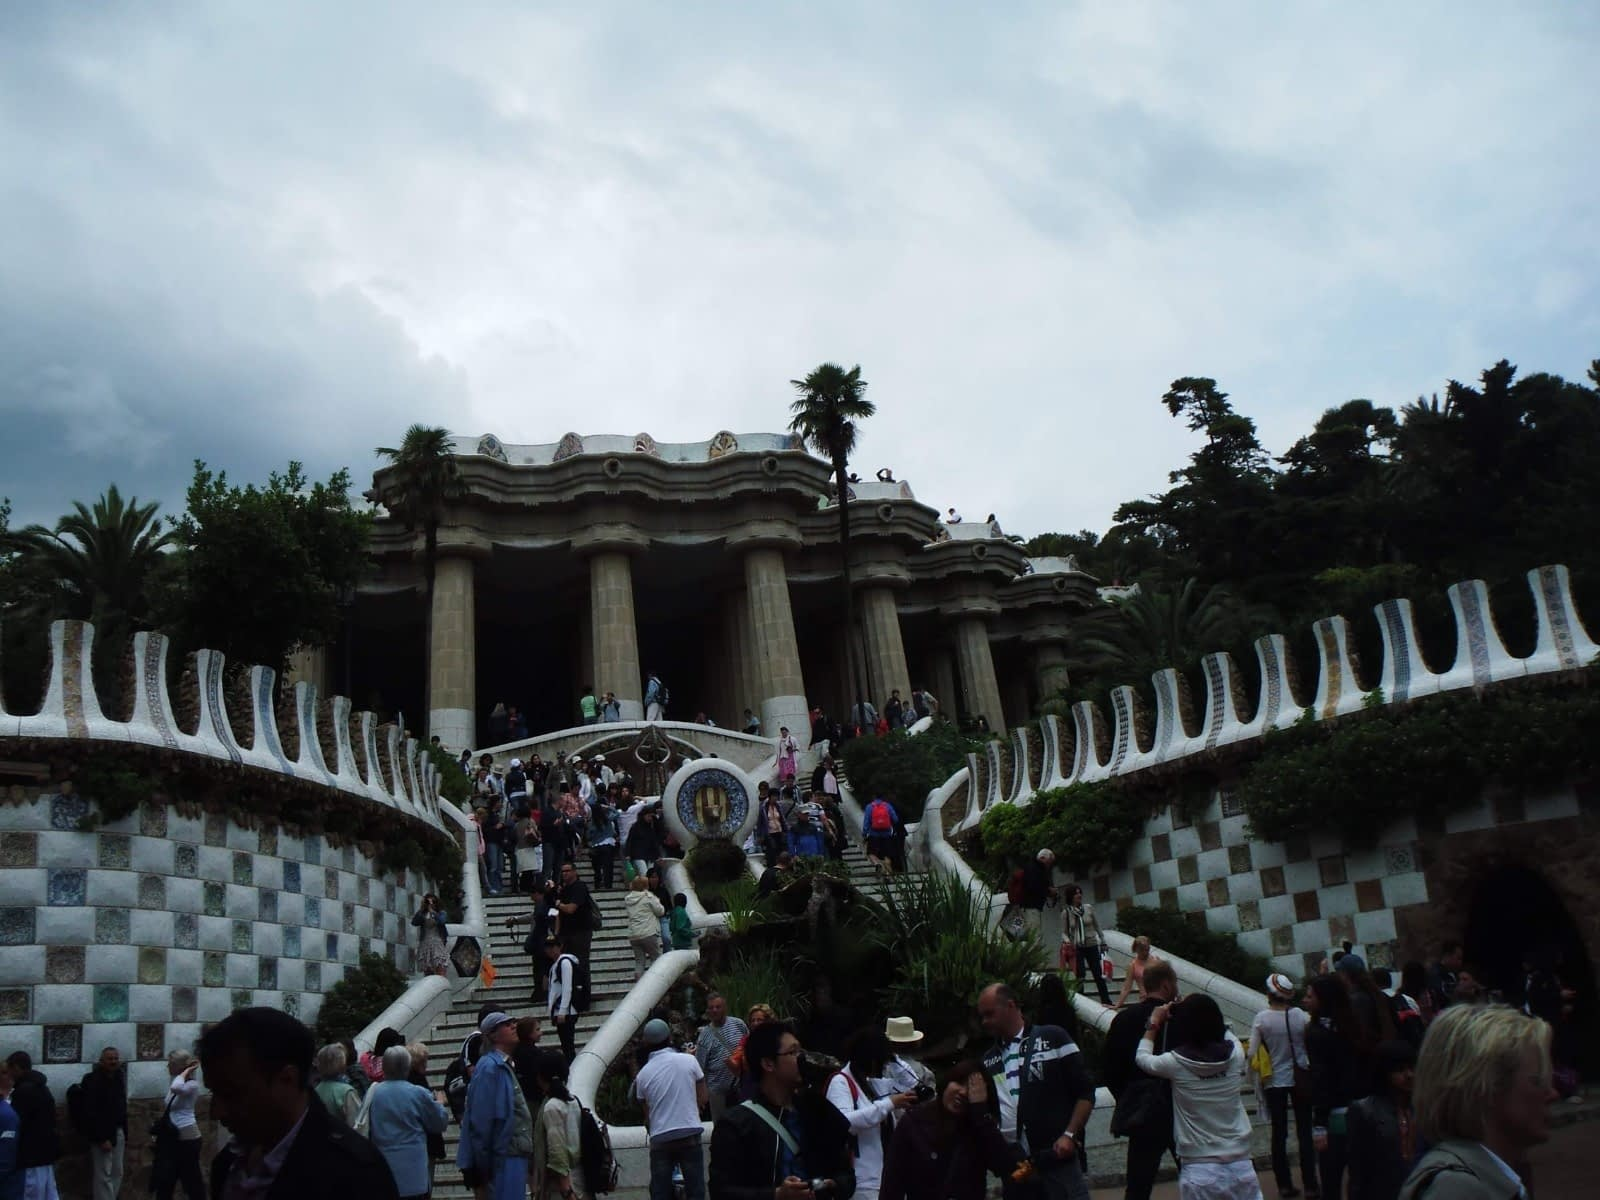 Gaudi's Gingerbread House in Parc Guell Looks Delicious 7